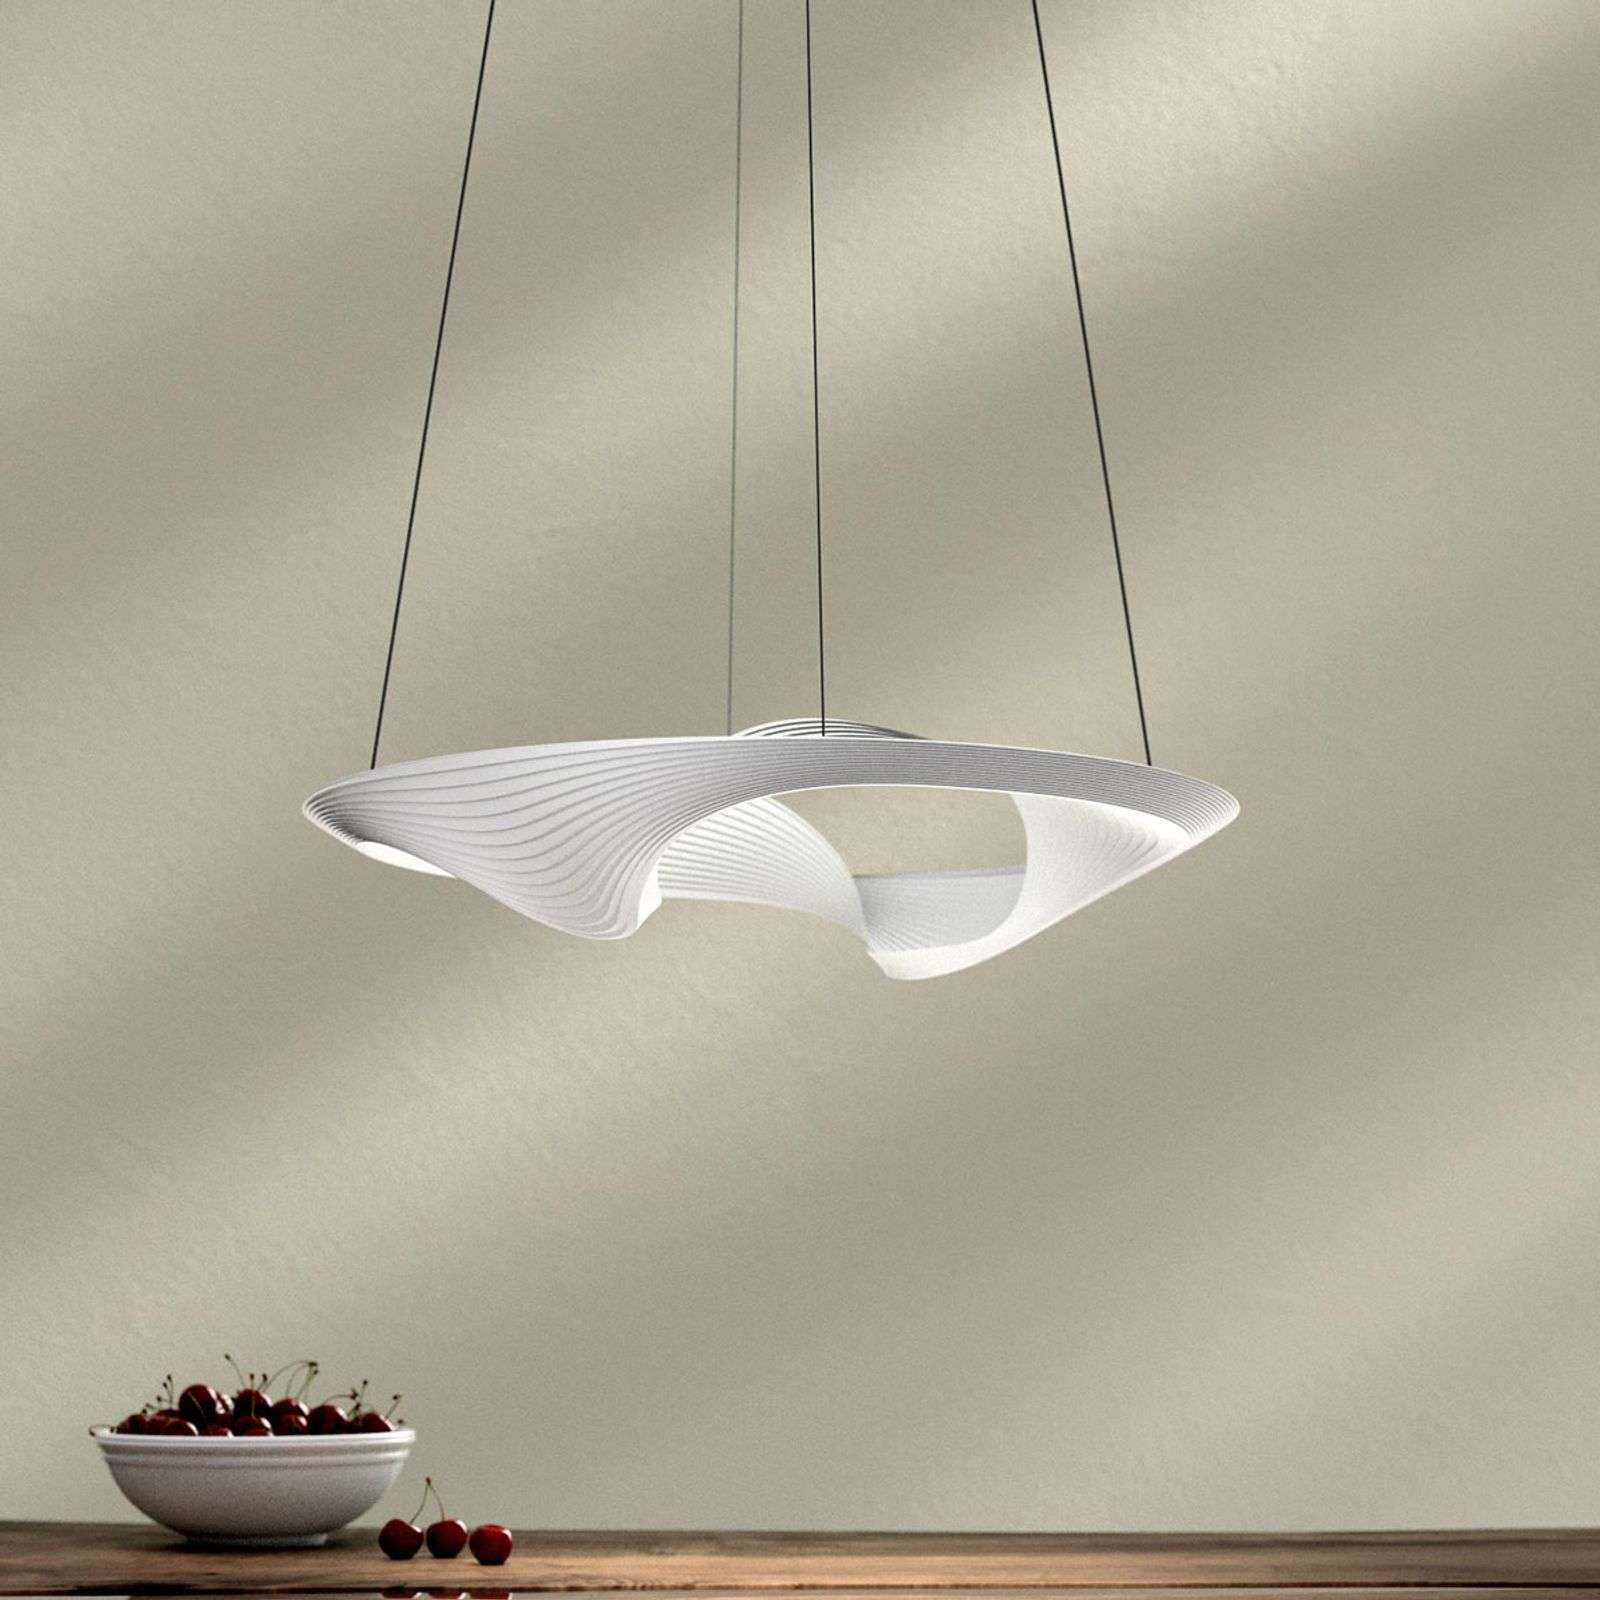 Suspension LED Sestessa Cabrio, dimmable